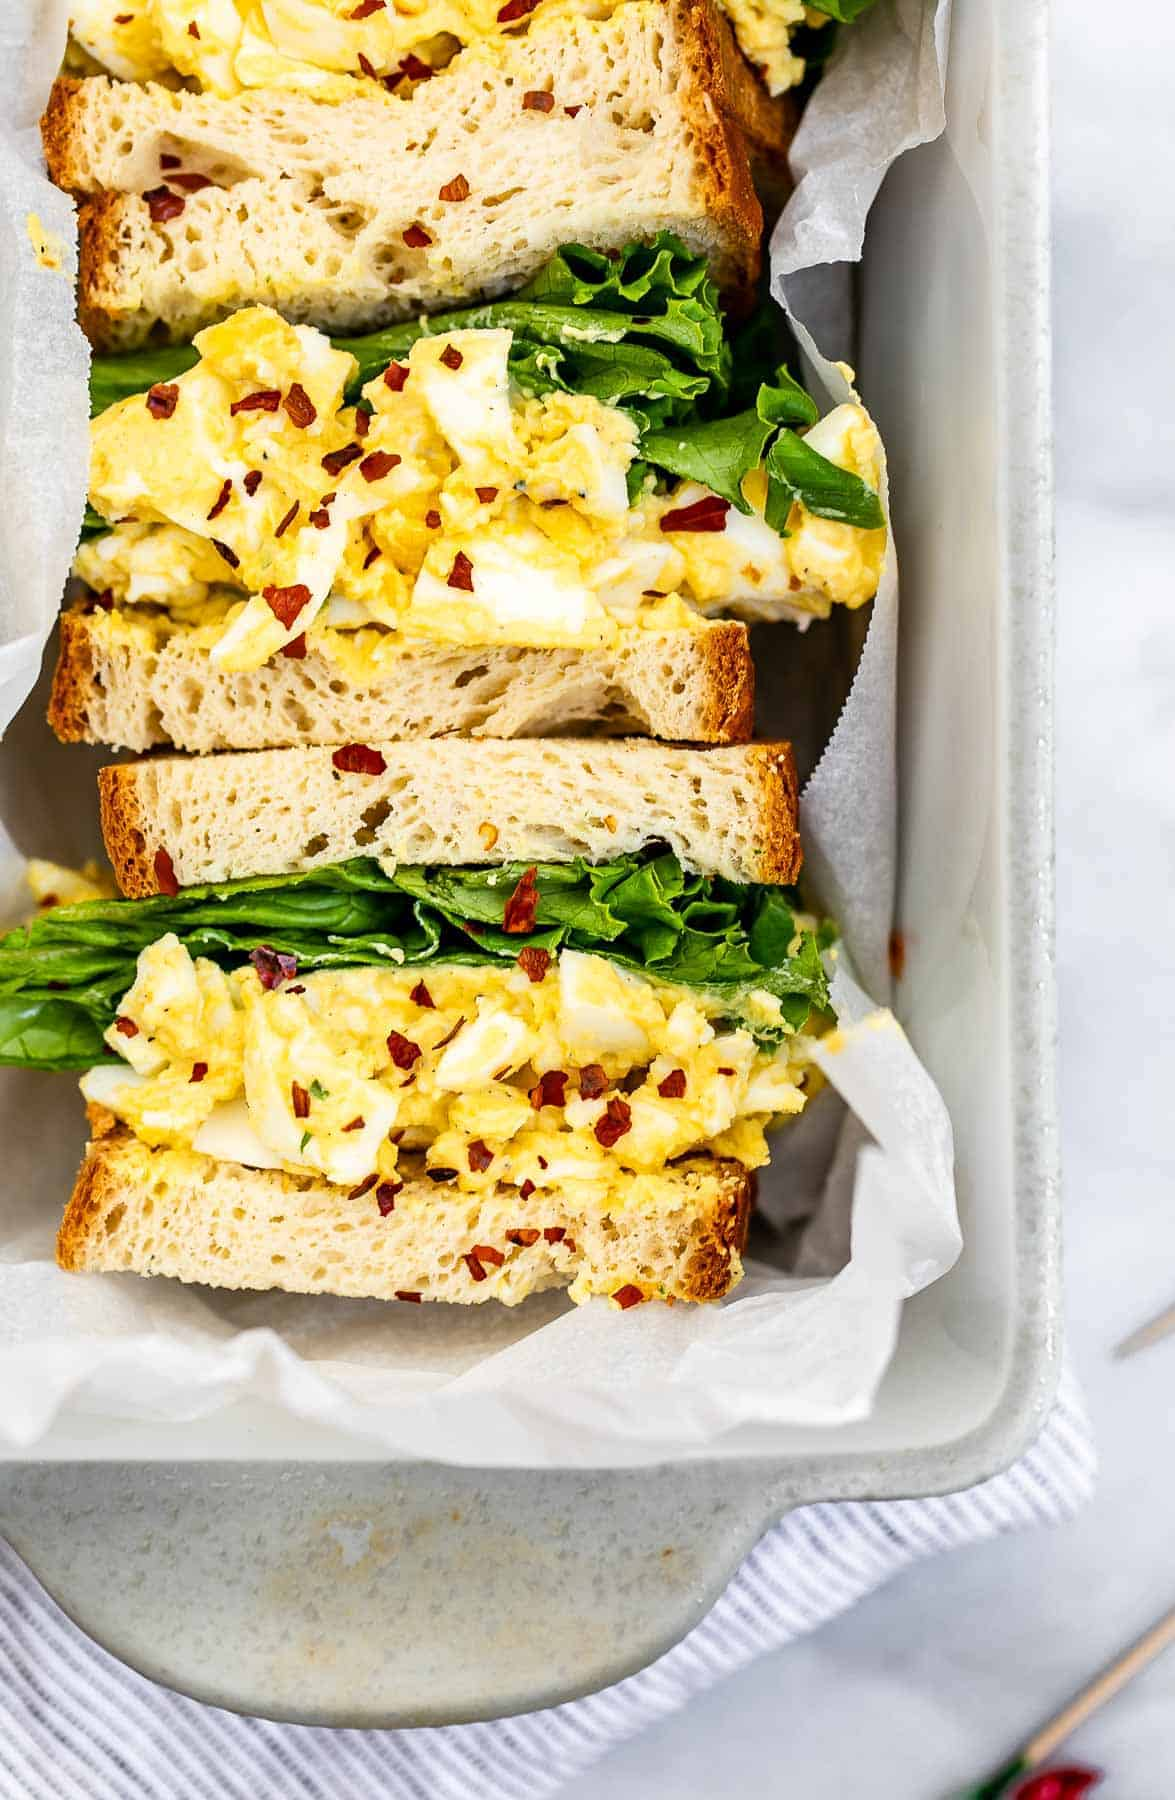 Up close image of the egg salad sandwich with red pepper flakes.